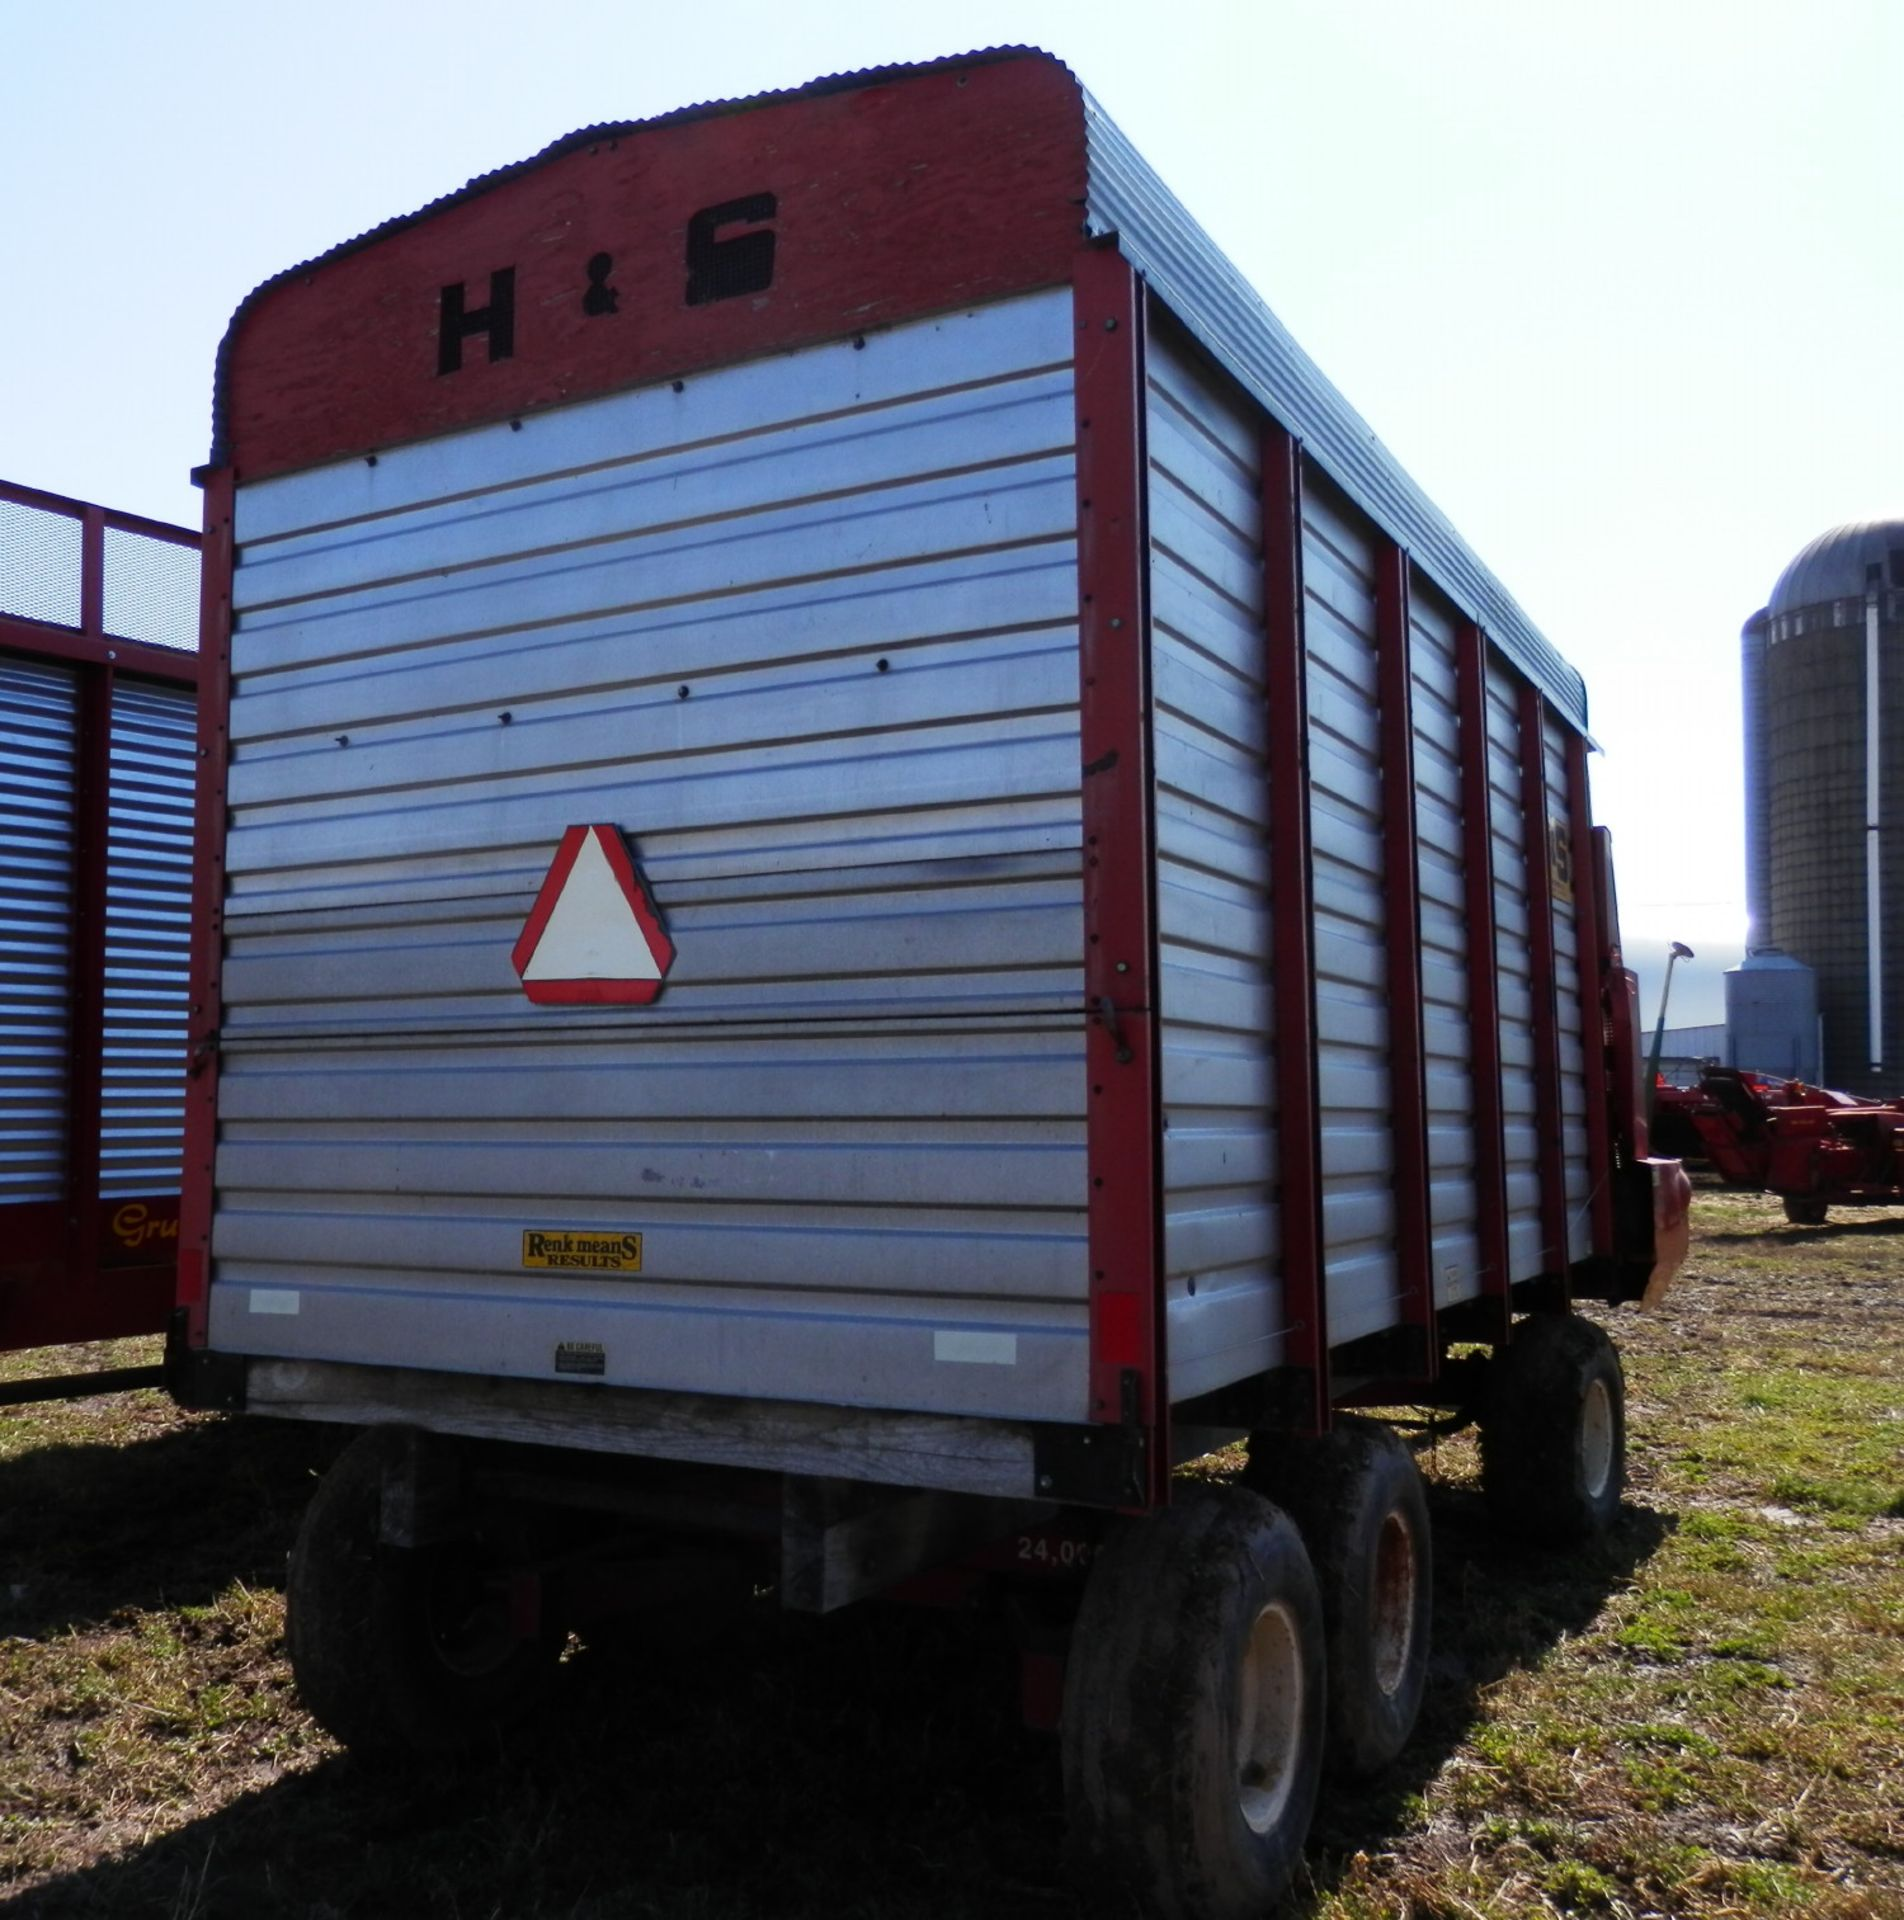 H&S XL-88 16' LH FORAGE WAGON - Image 3 of 6